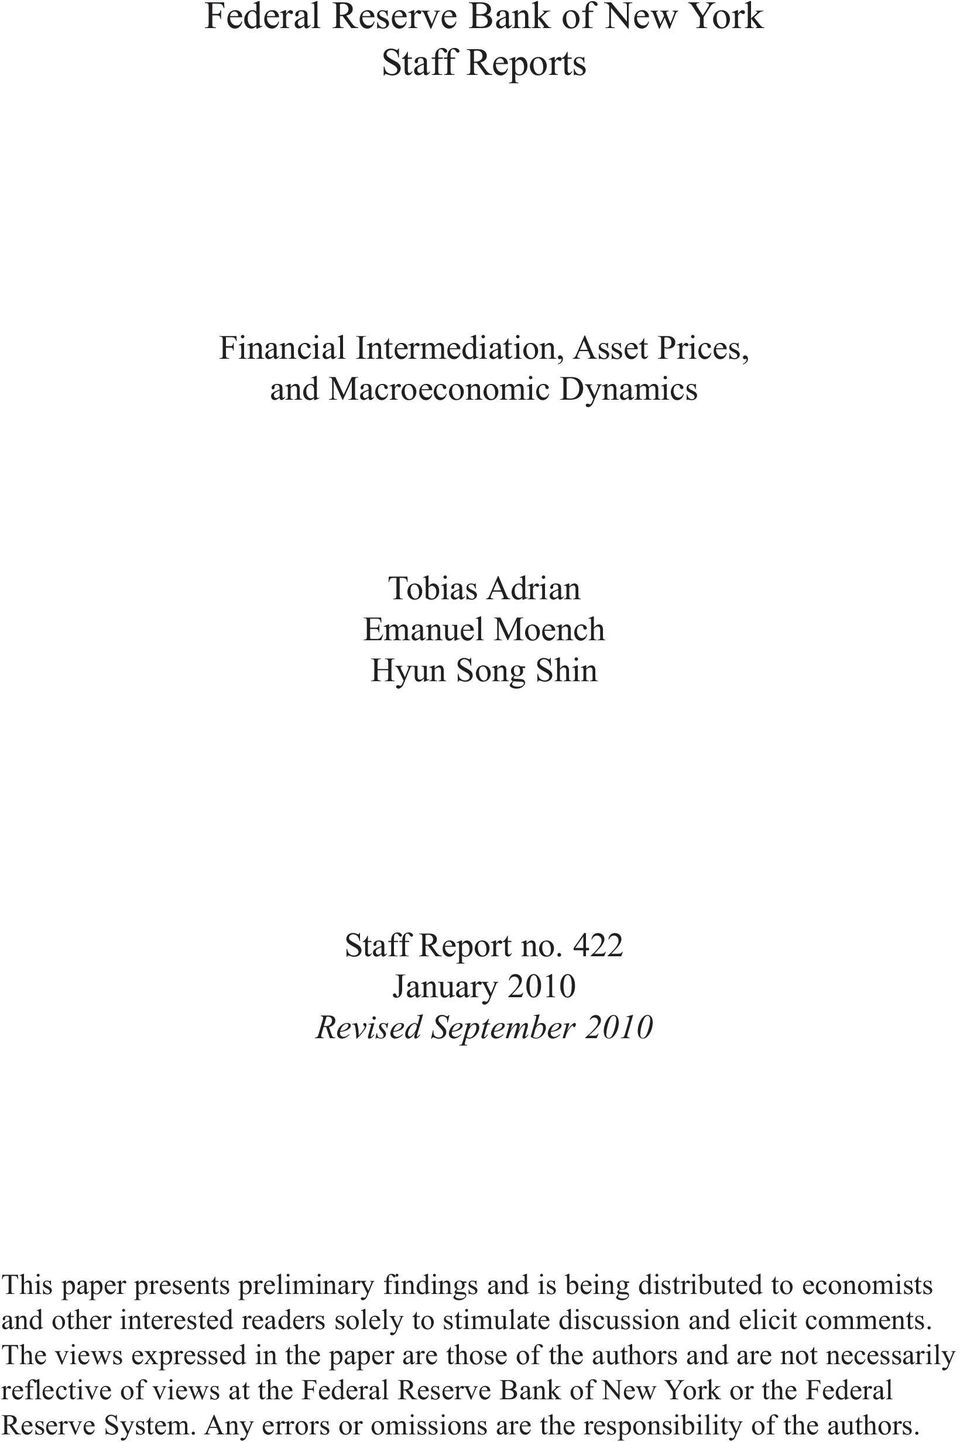 422 January 2010 Revised September 2010 This paper presents preliminary findings and is being distributed to economists and other interested readers